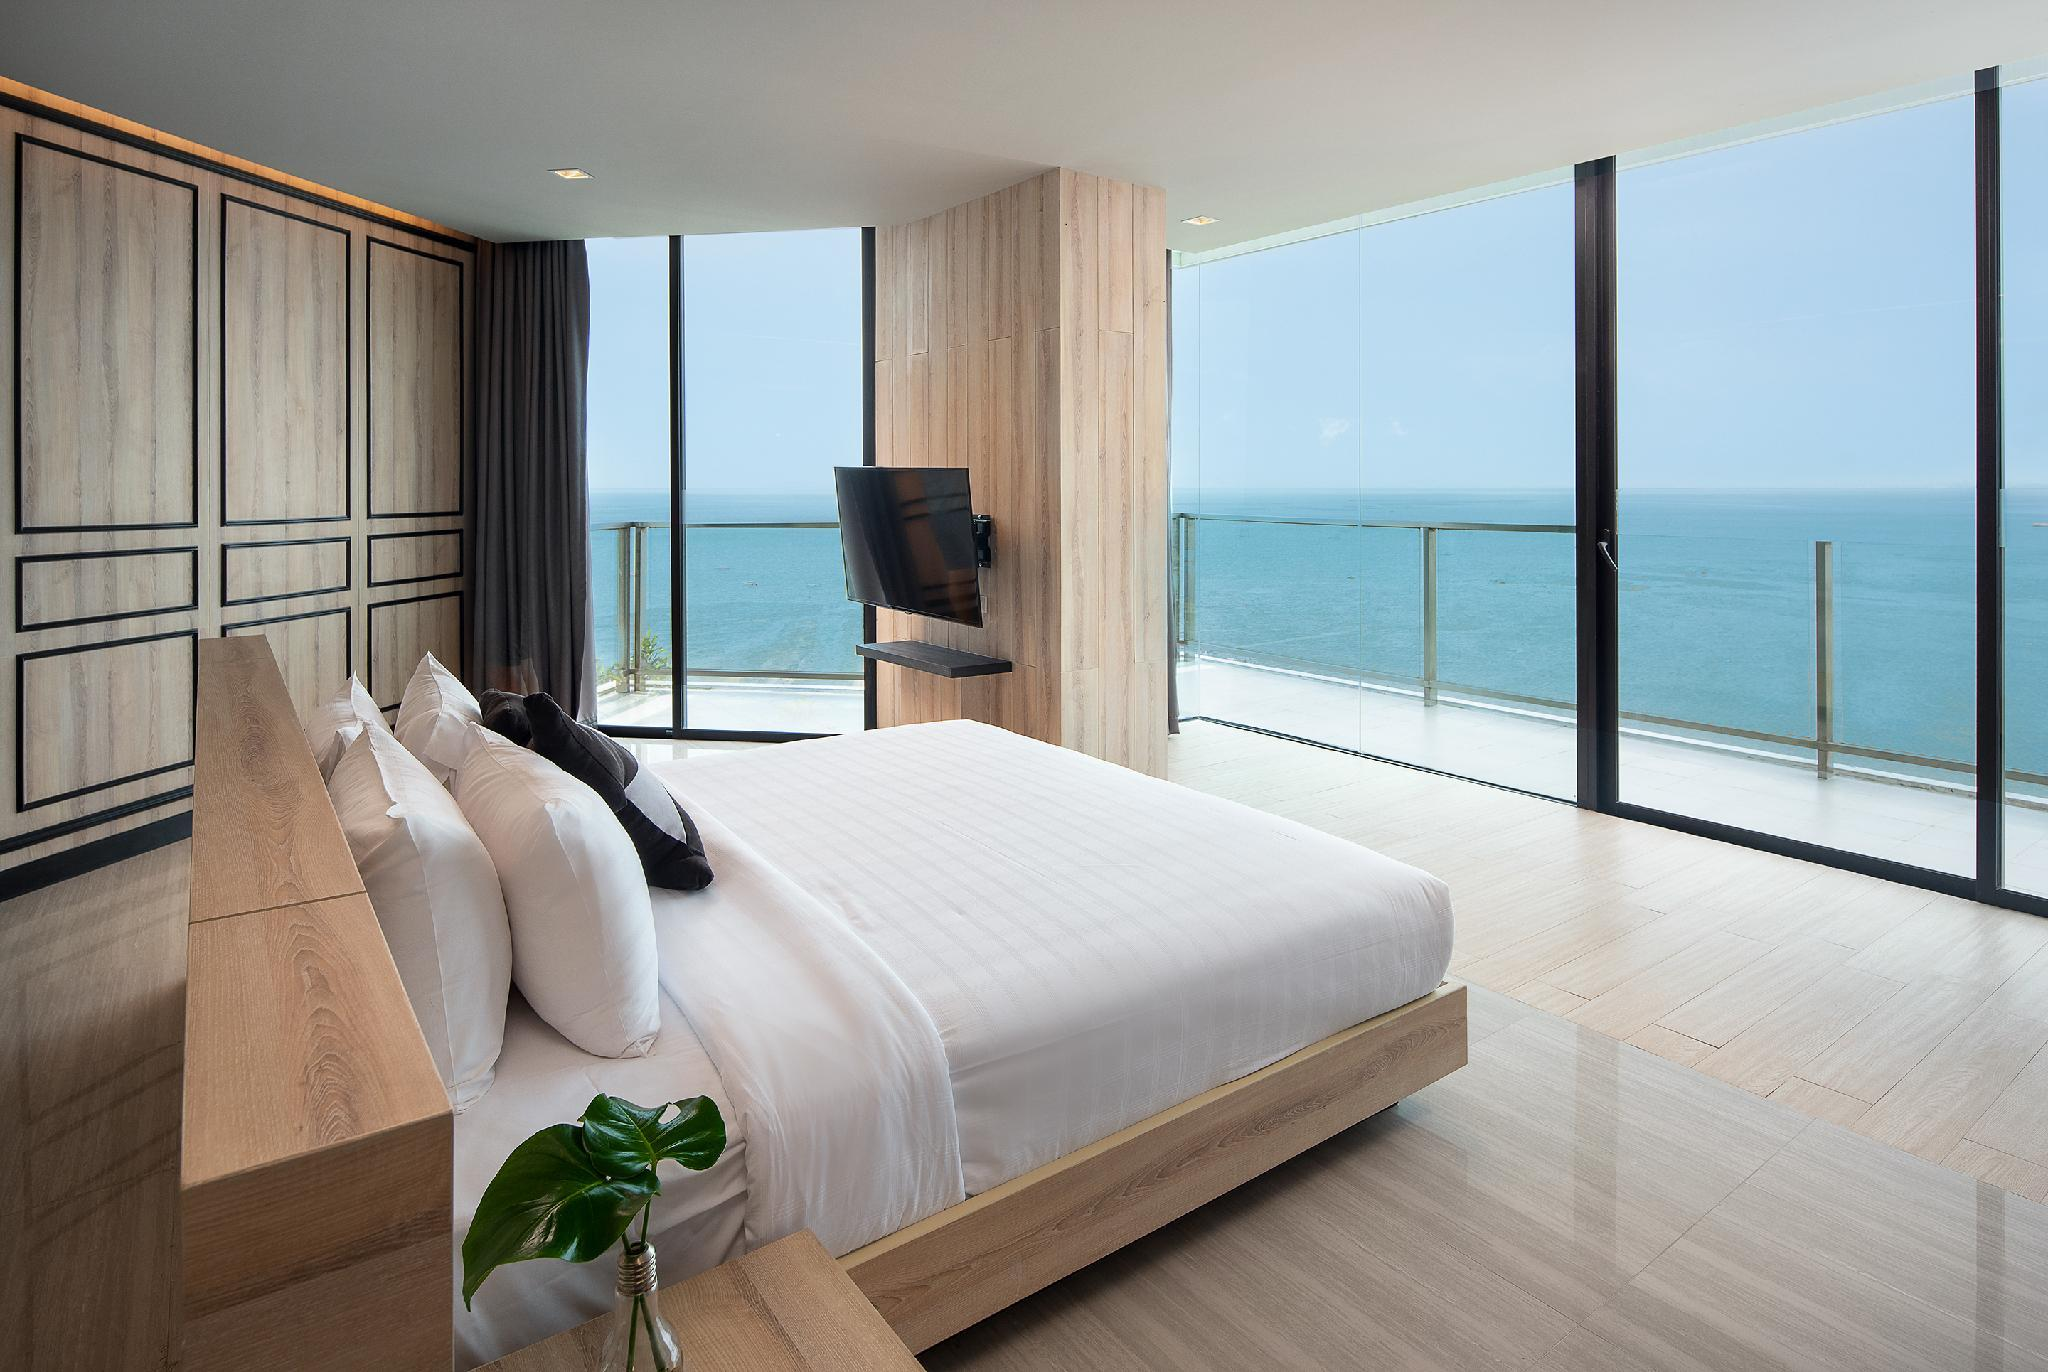 面海雙臥室套房 (2-Bedroom Oceanfront Suite)